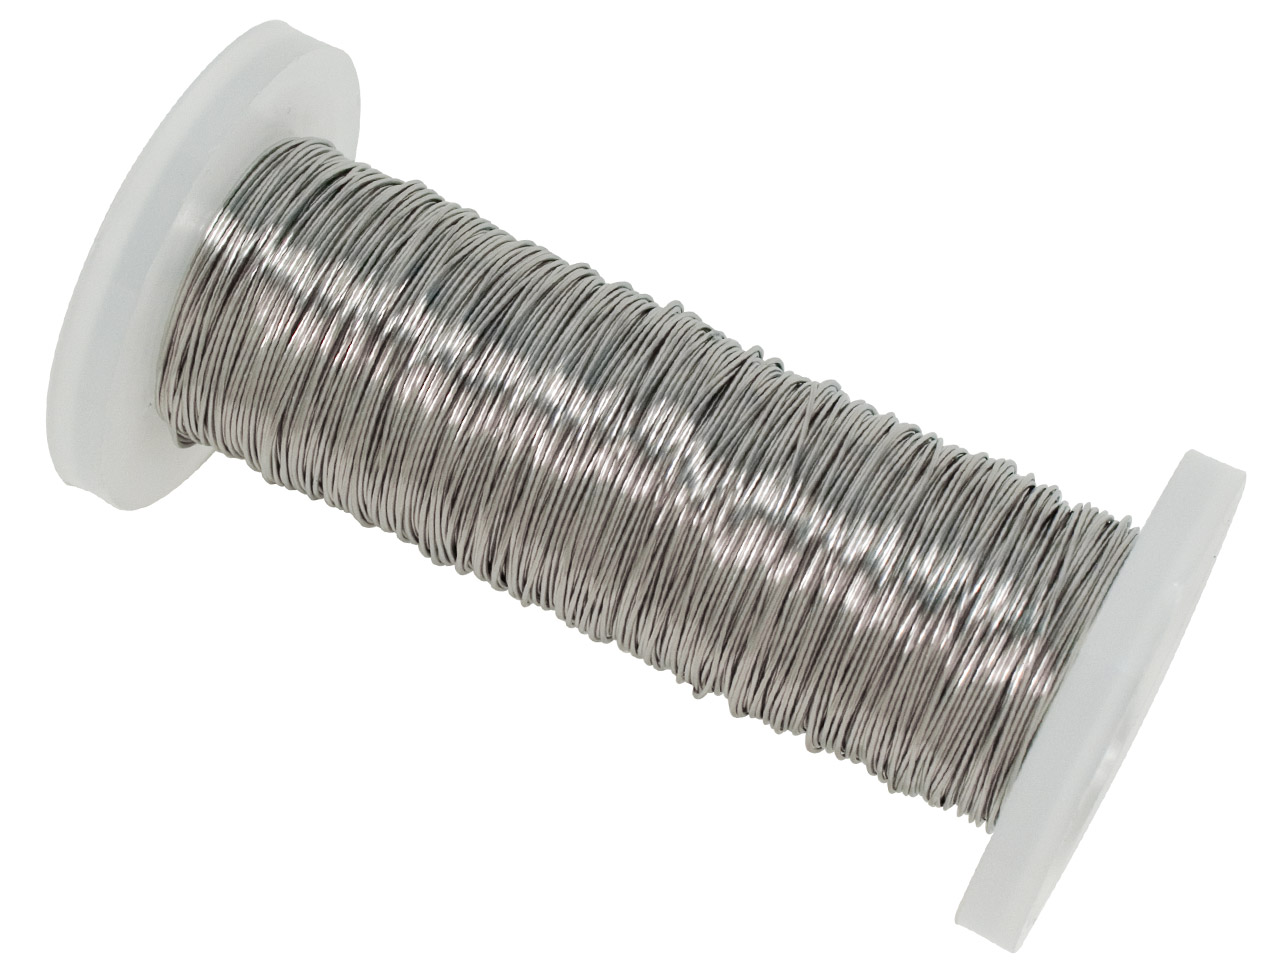 Stainless Steel Binding Wire 0.45mm X 50g